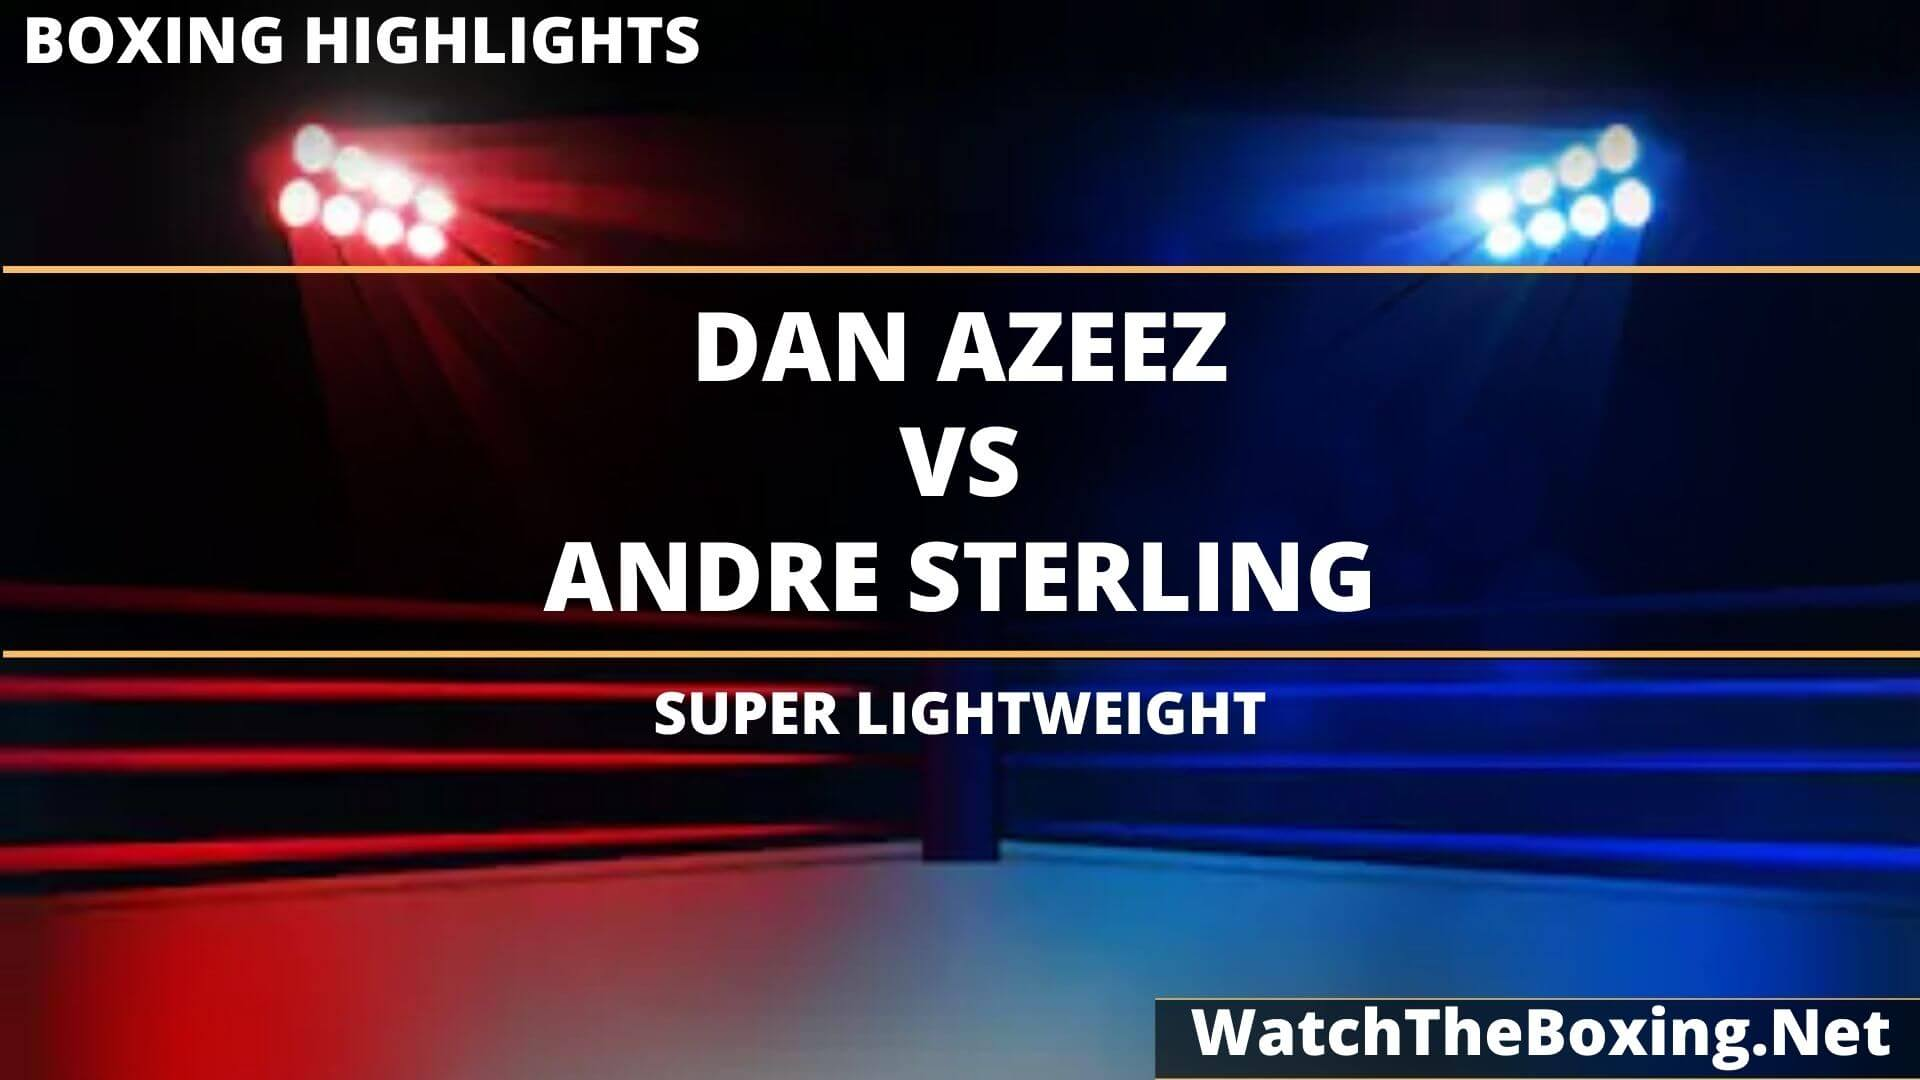 Dan Azeez Vs Andre Sterling Highlights 2020 Light Heavyweight